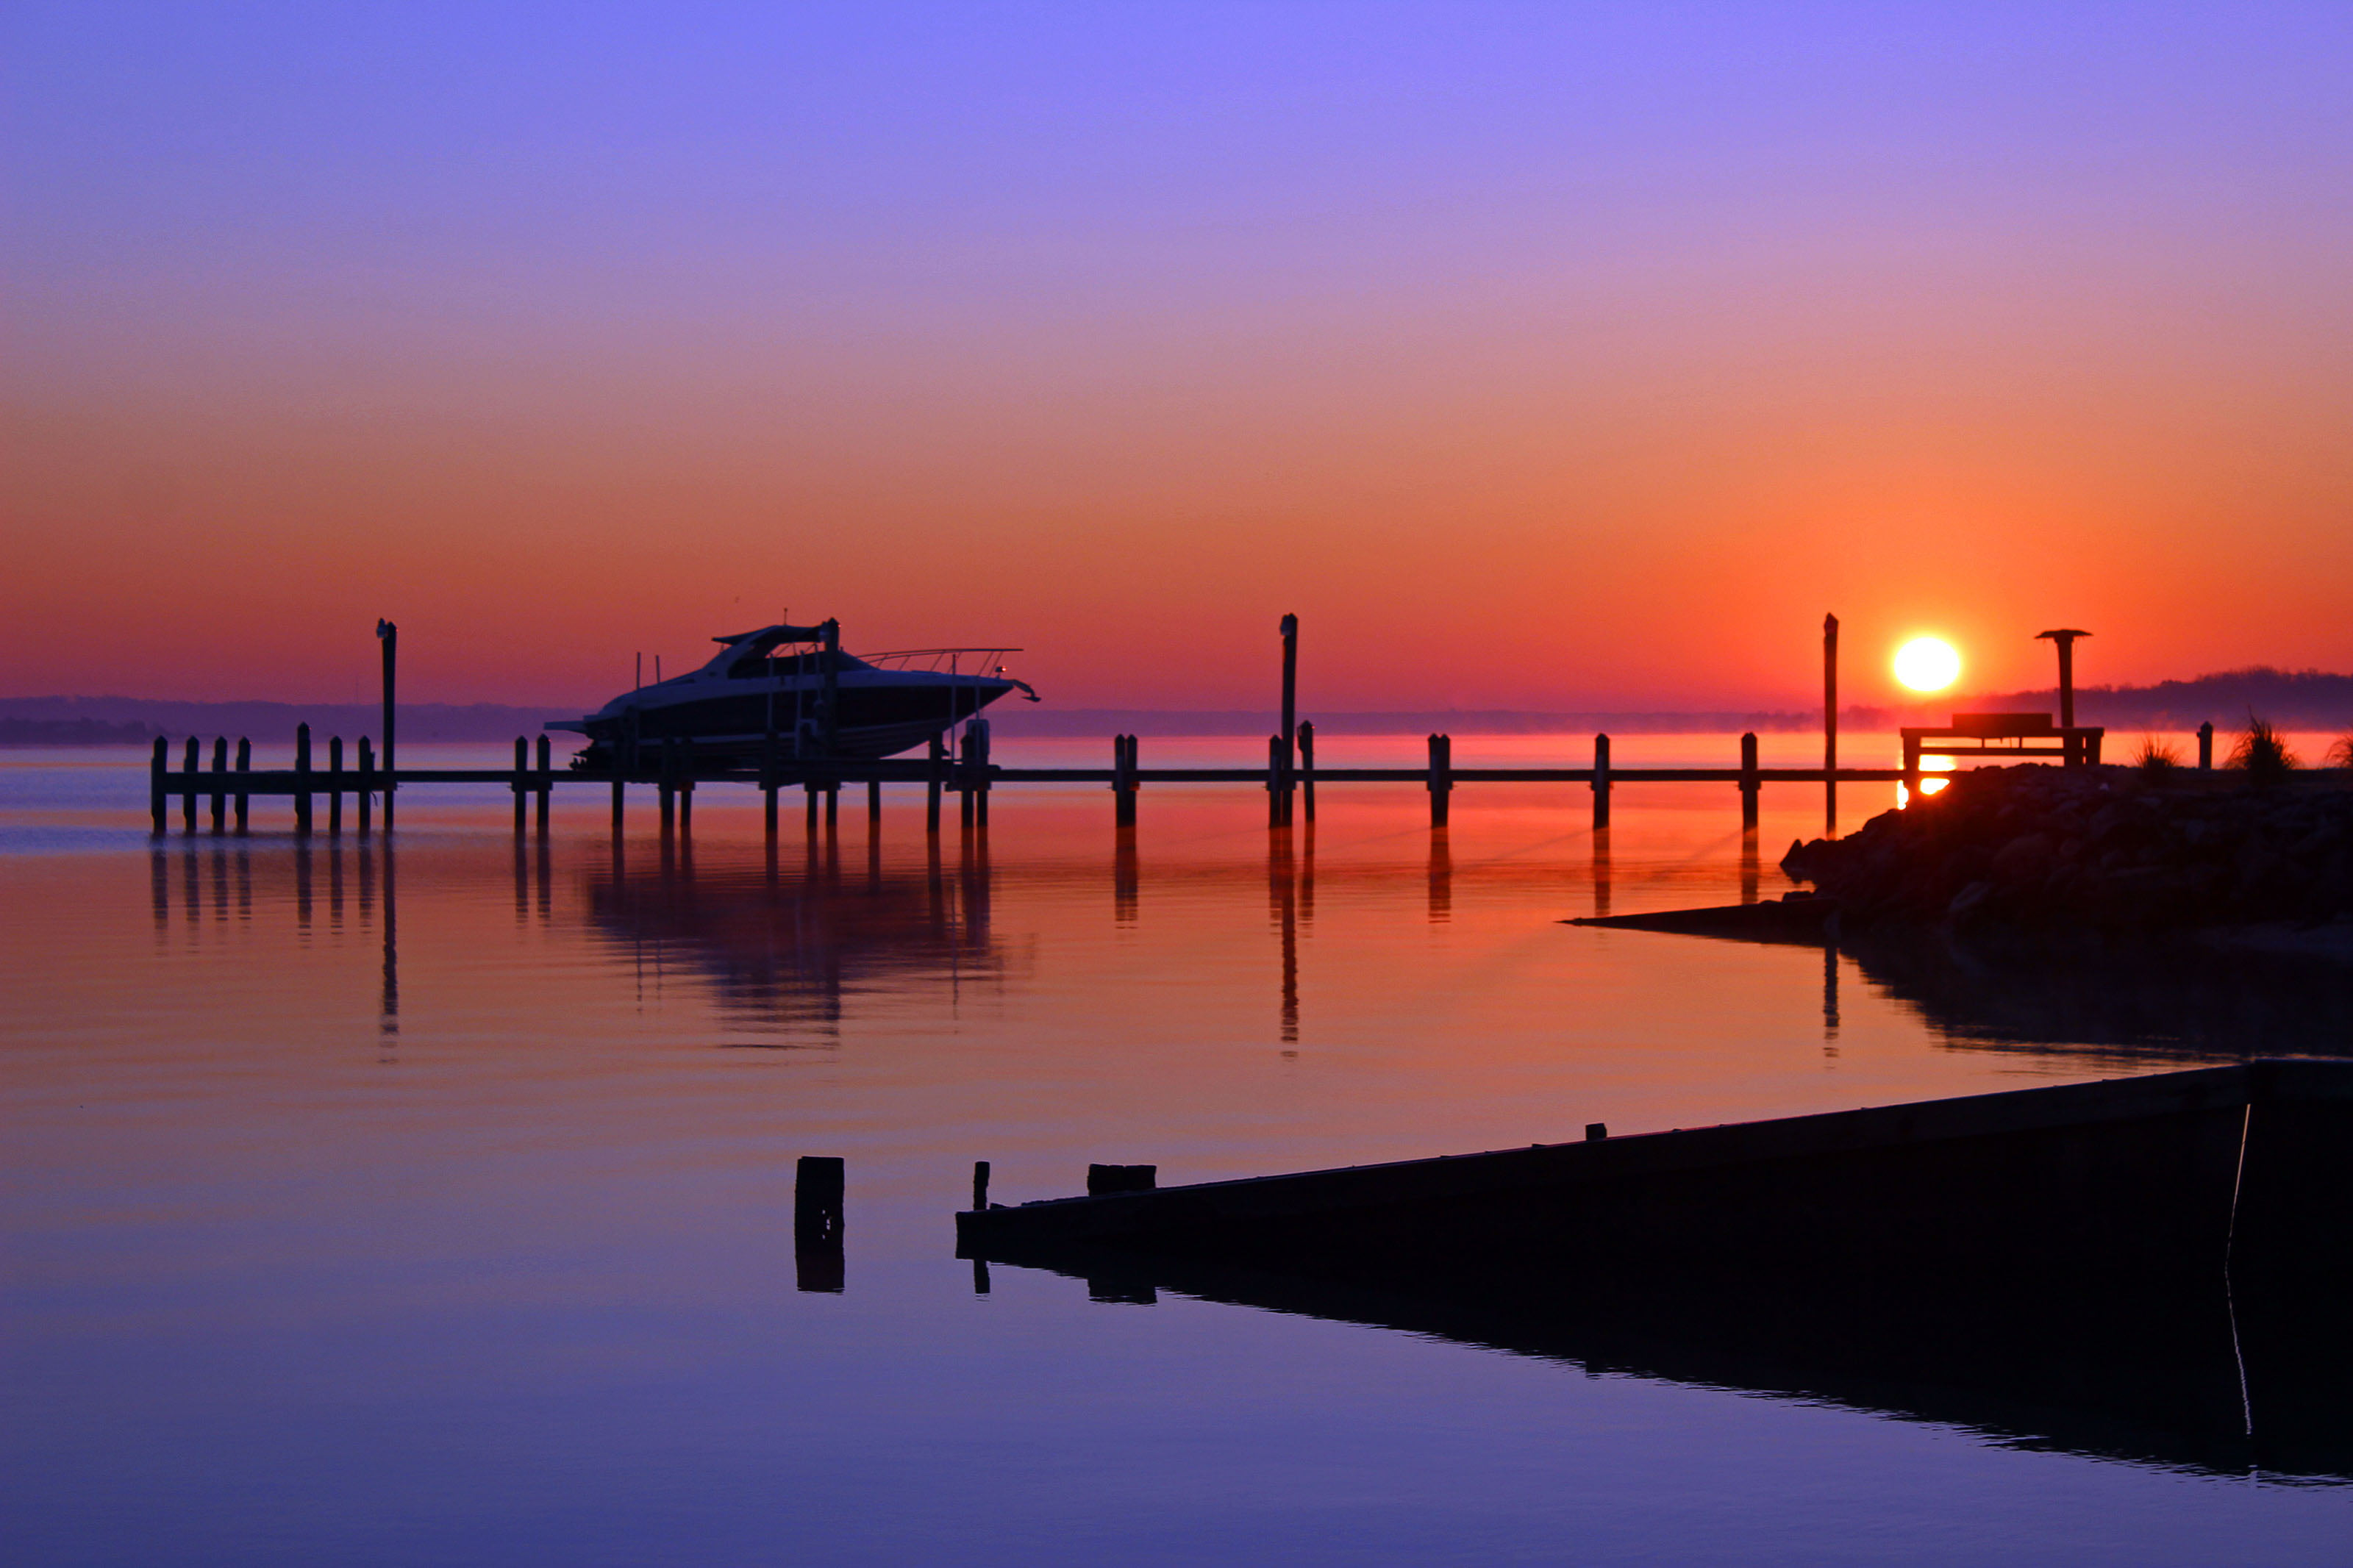 Live Wallpaper For Iphone 3gs Silhouette Of Boat On Dock During Sunset Hd Wallpaper